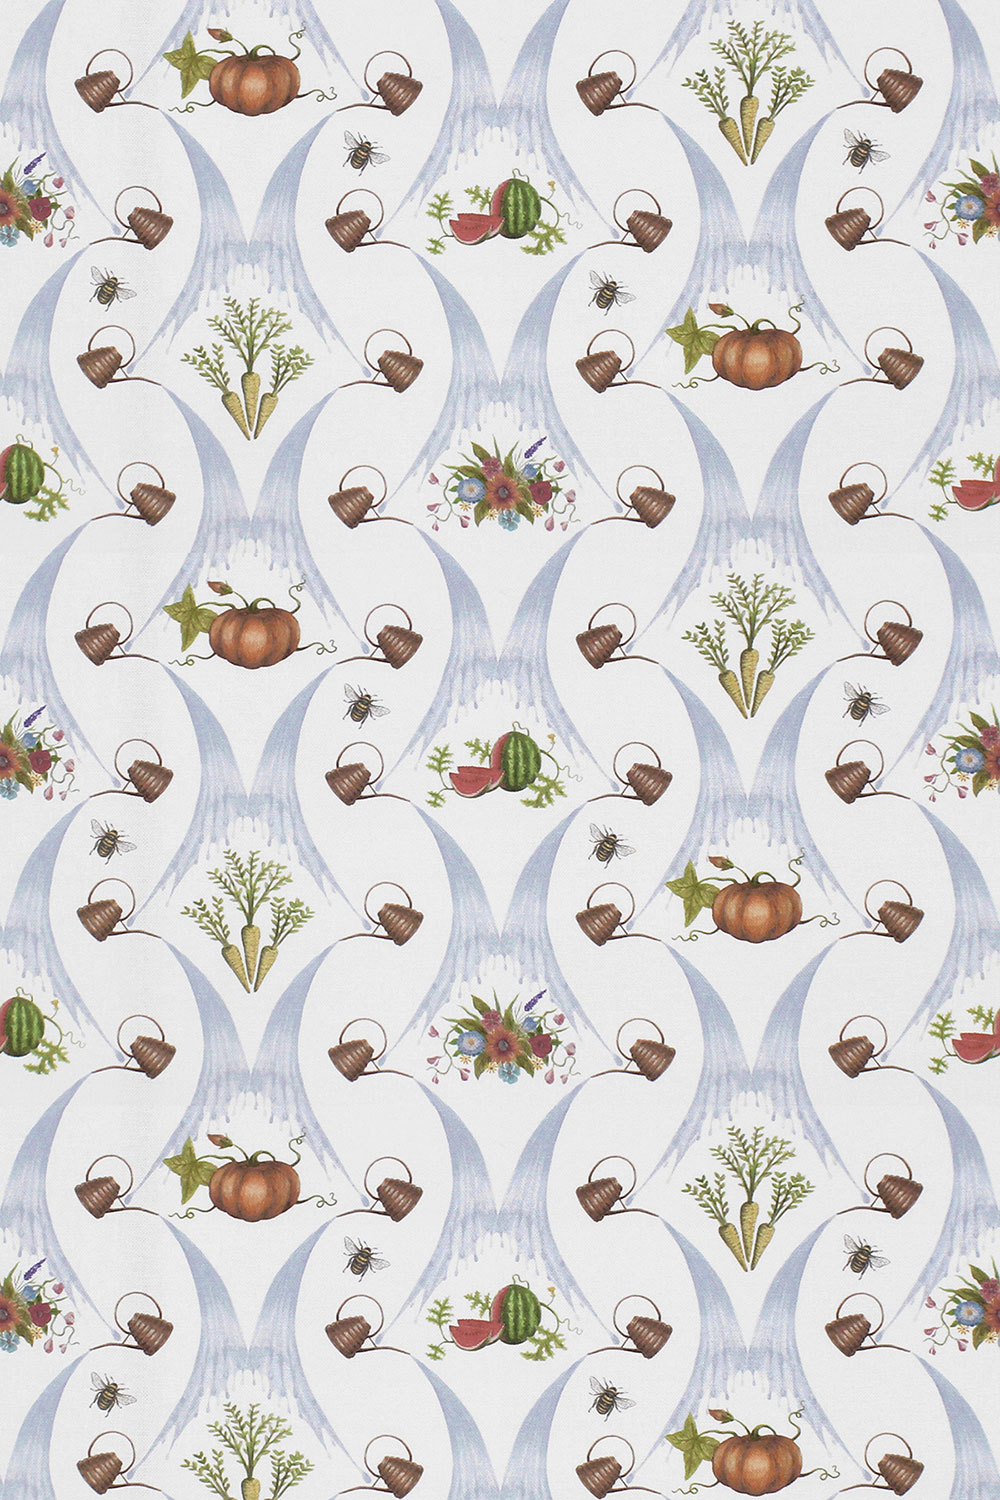 Watering Can Harvest Fabric - Blue - by The Chateau by Angel Strawbridge